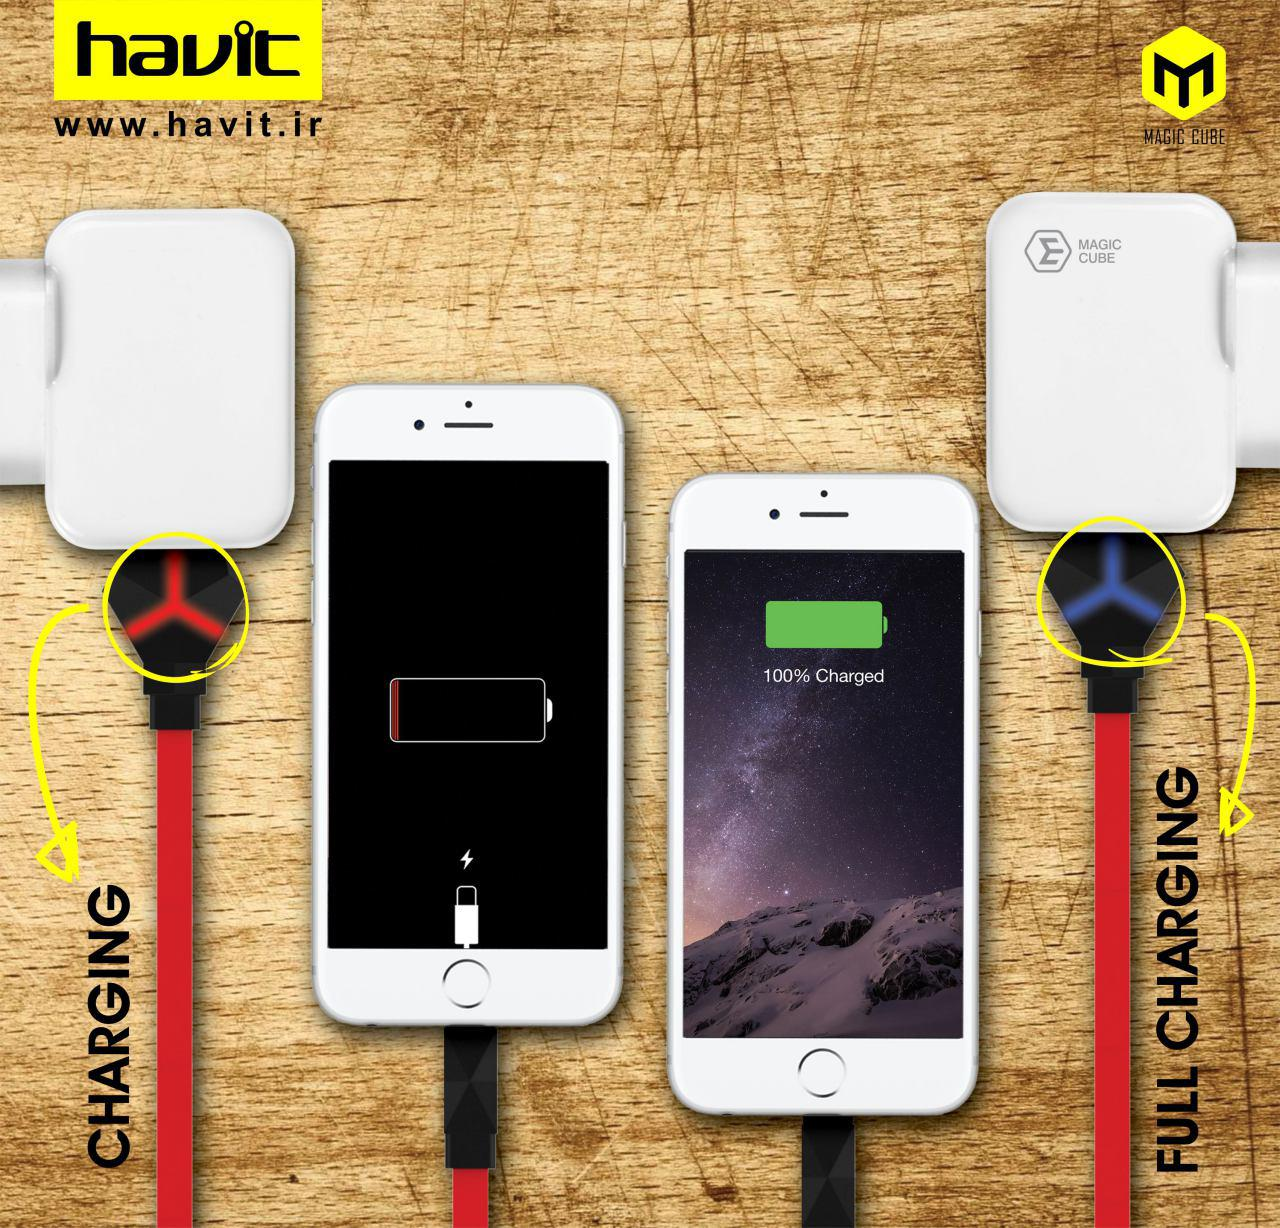 Havit CB533 iOS Cable